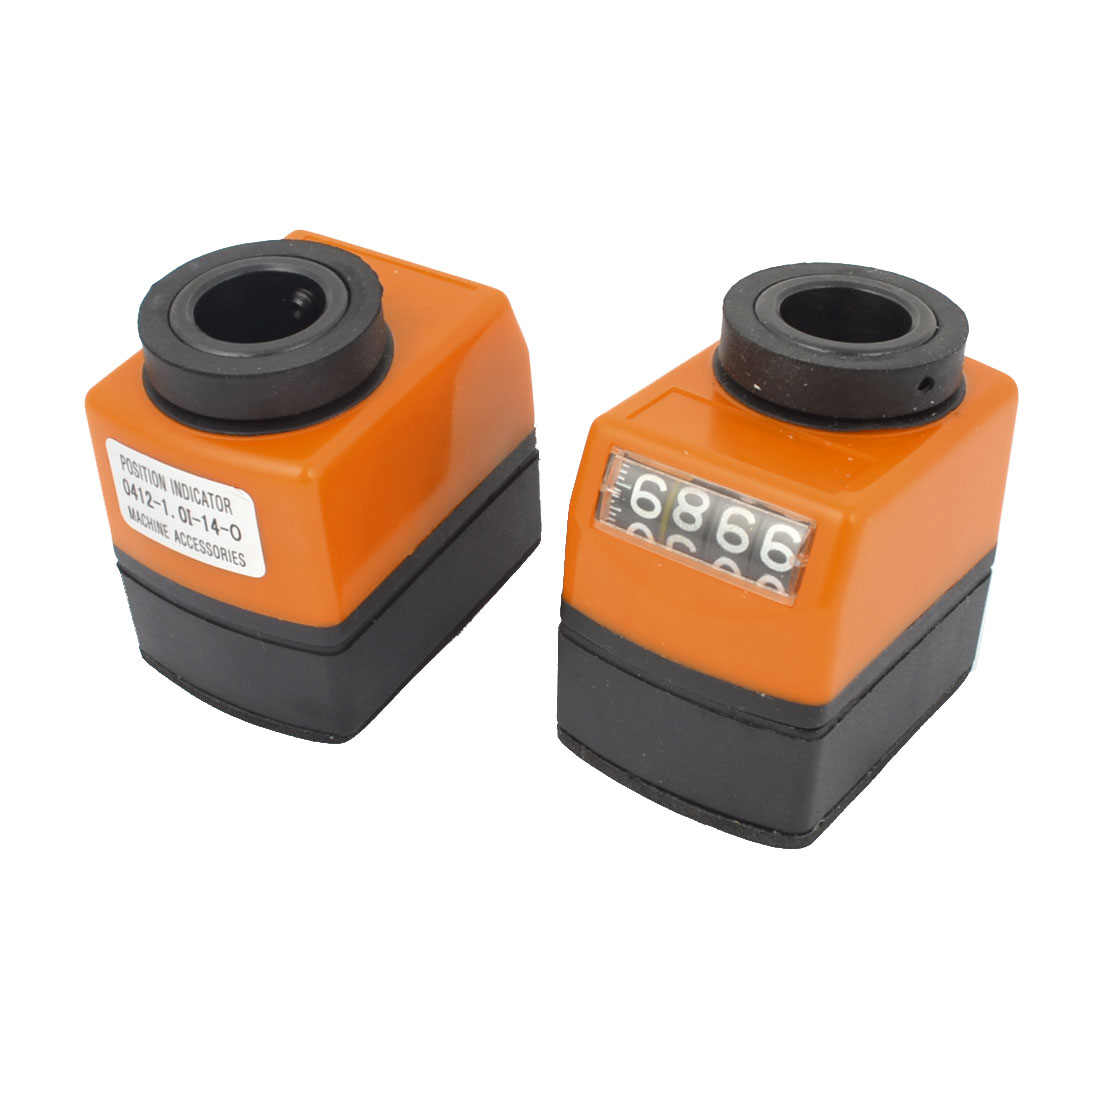 2PCS Vertical Clockwise 0-9999 Range Digital Position Indicator for Lathe